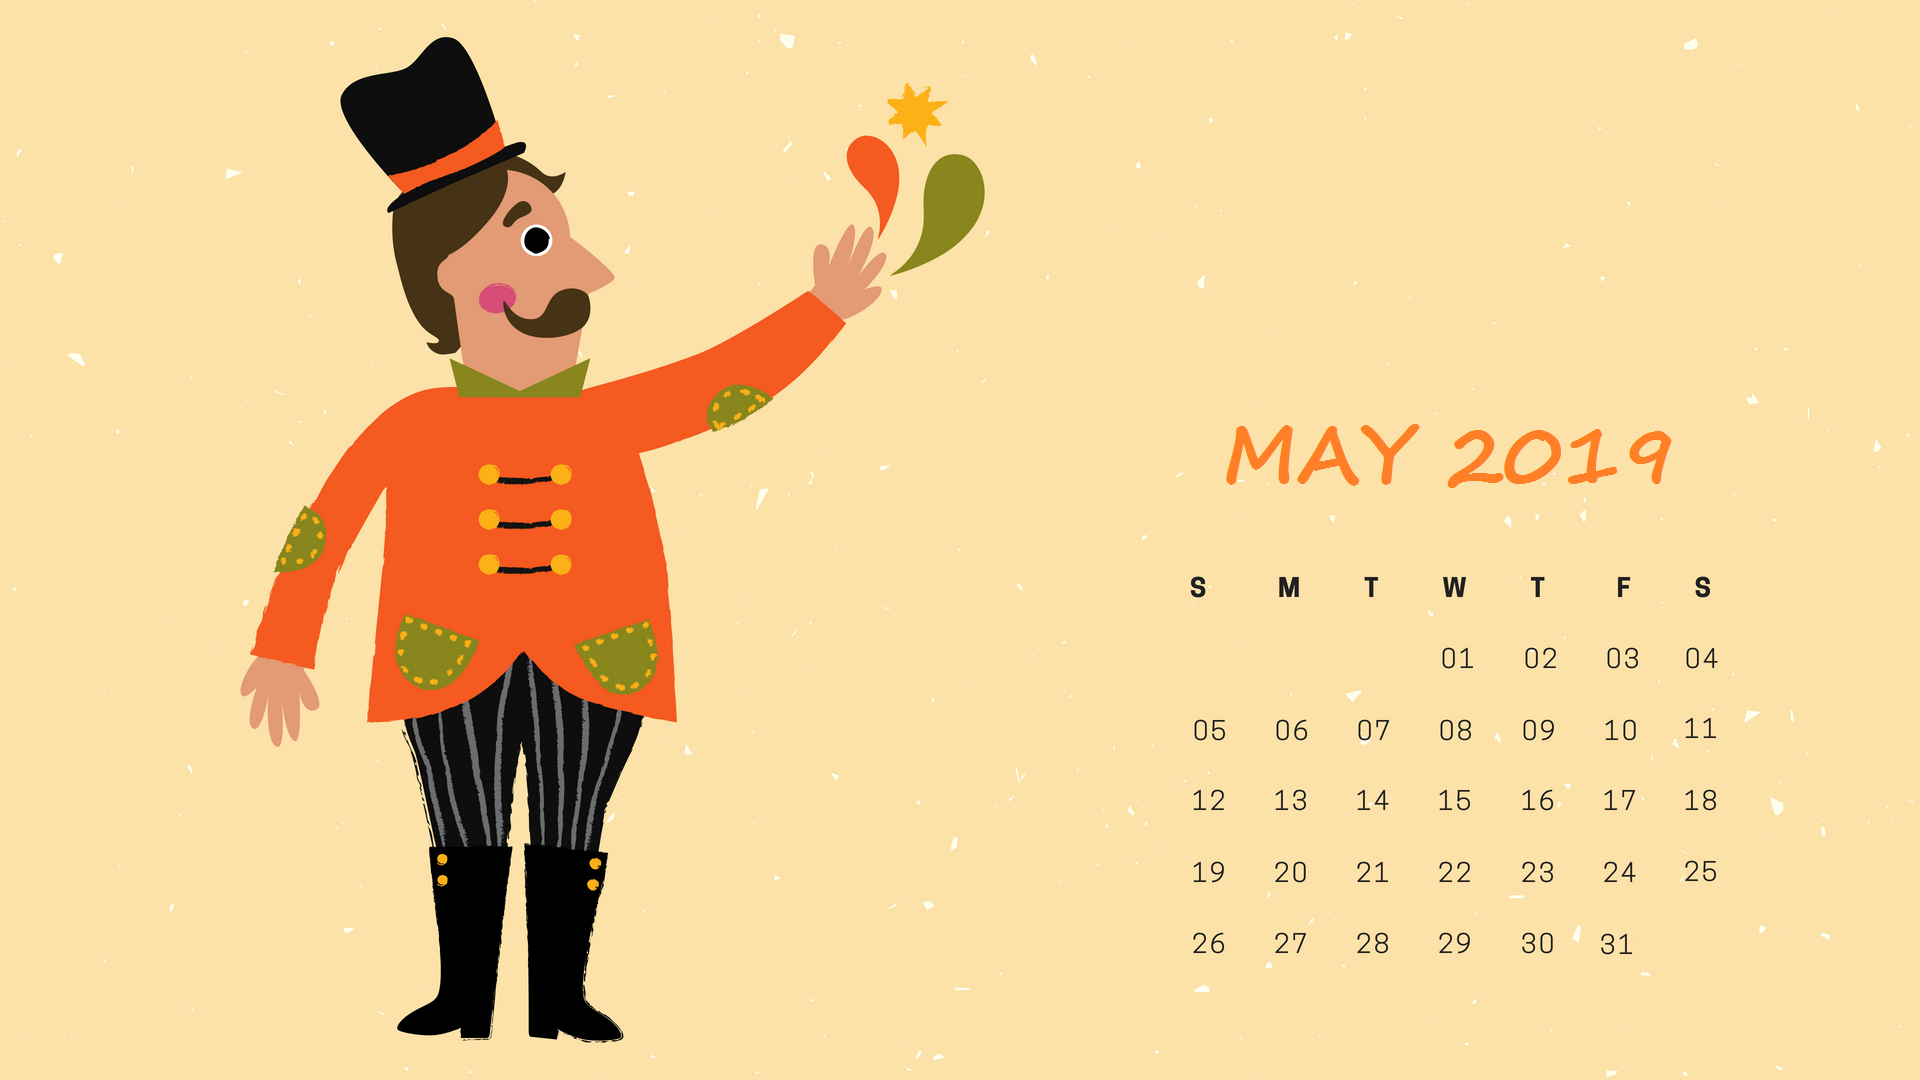 May 2019 Calendar Wallpaper